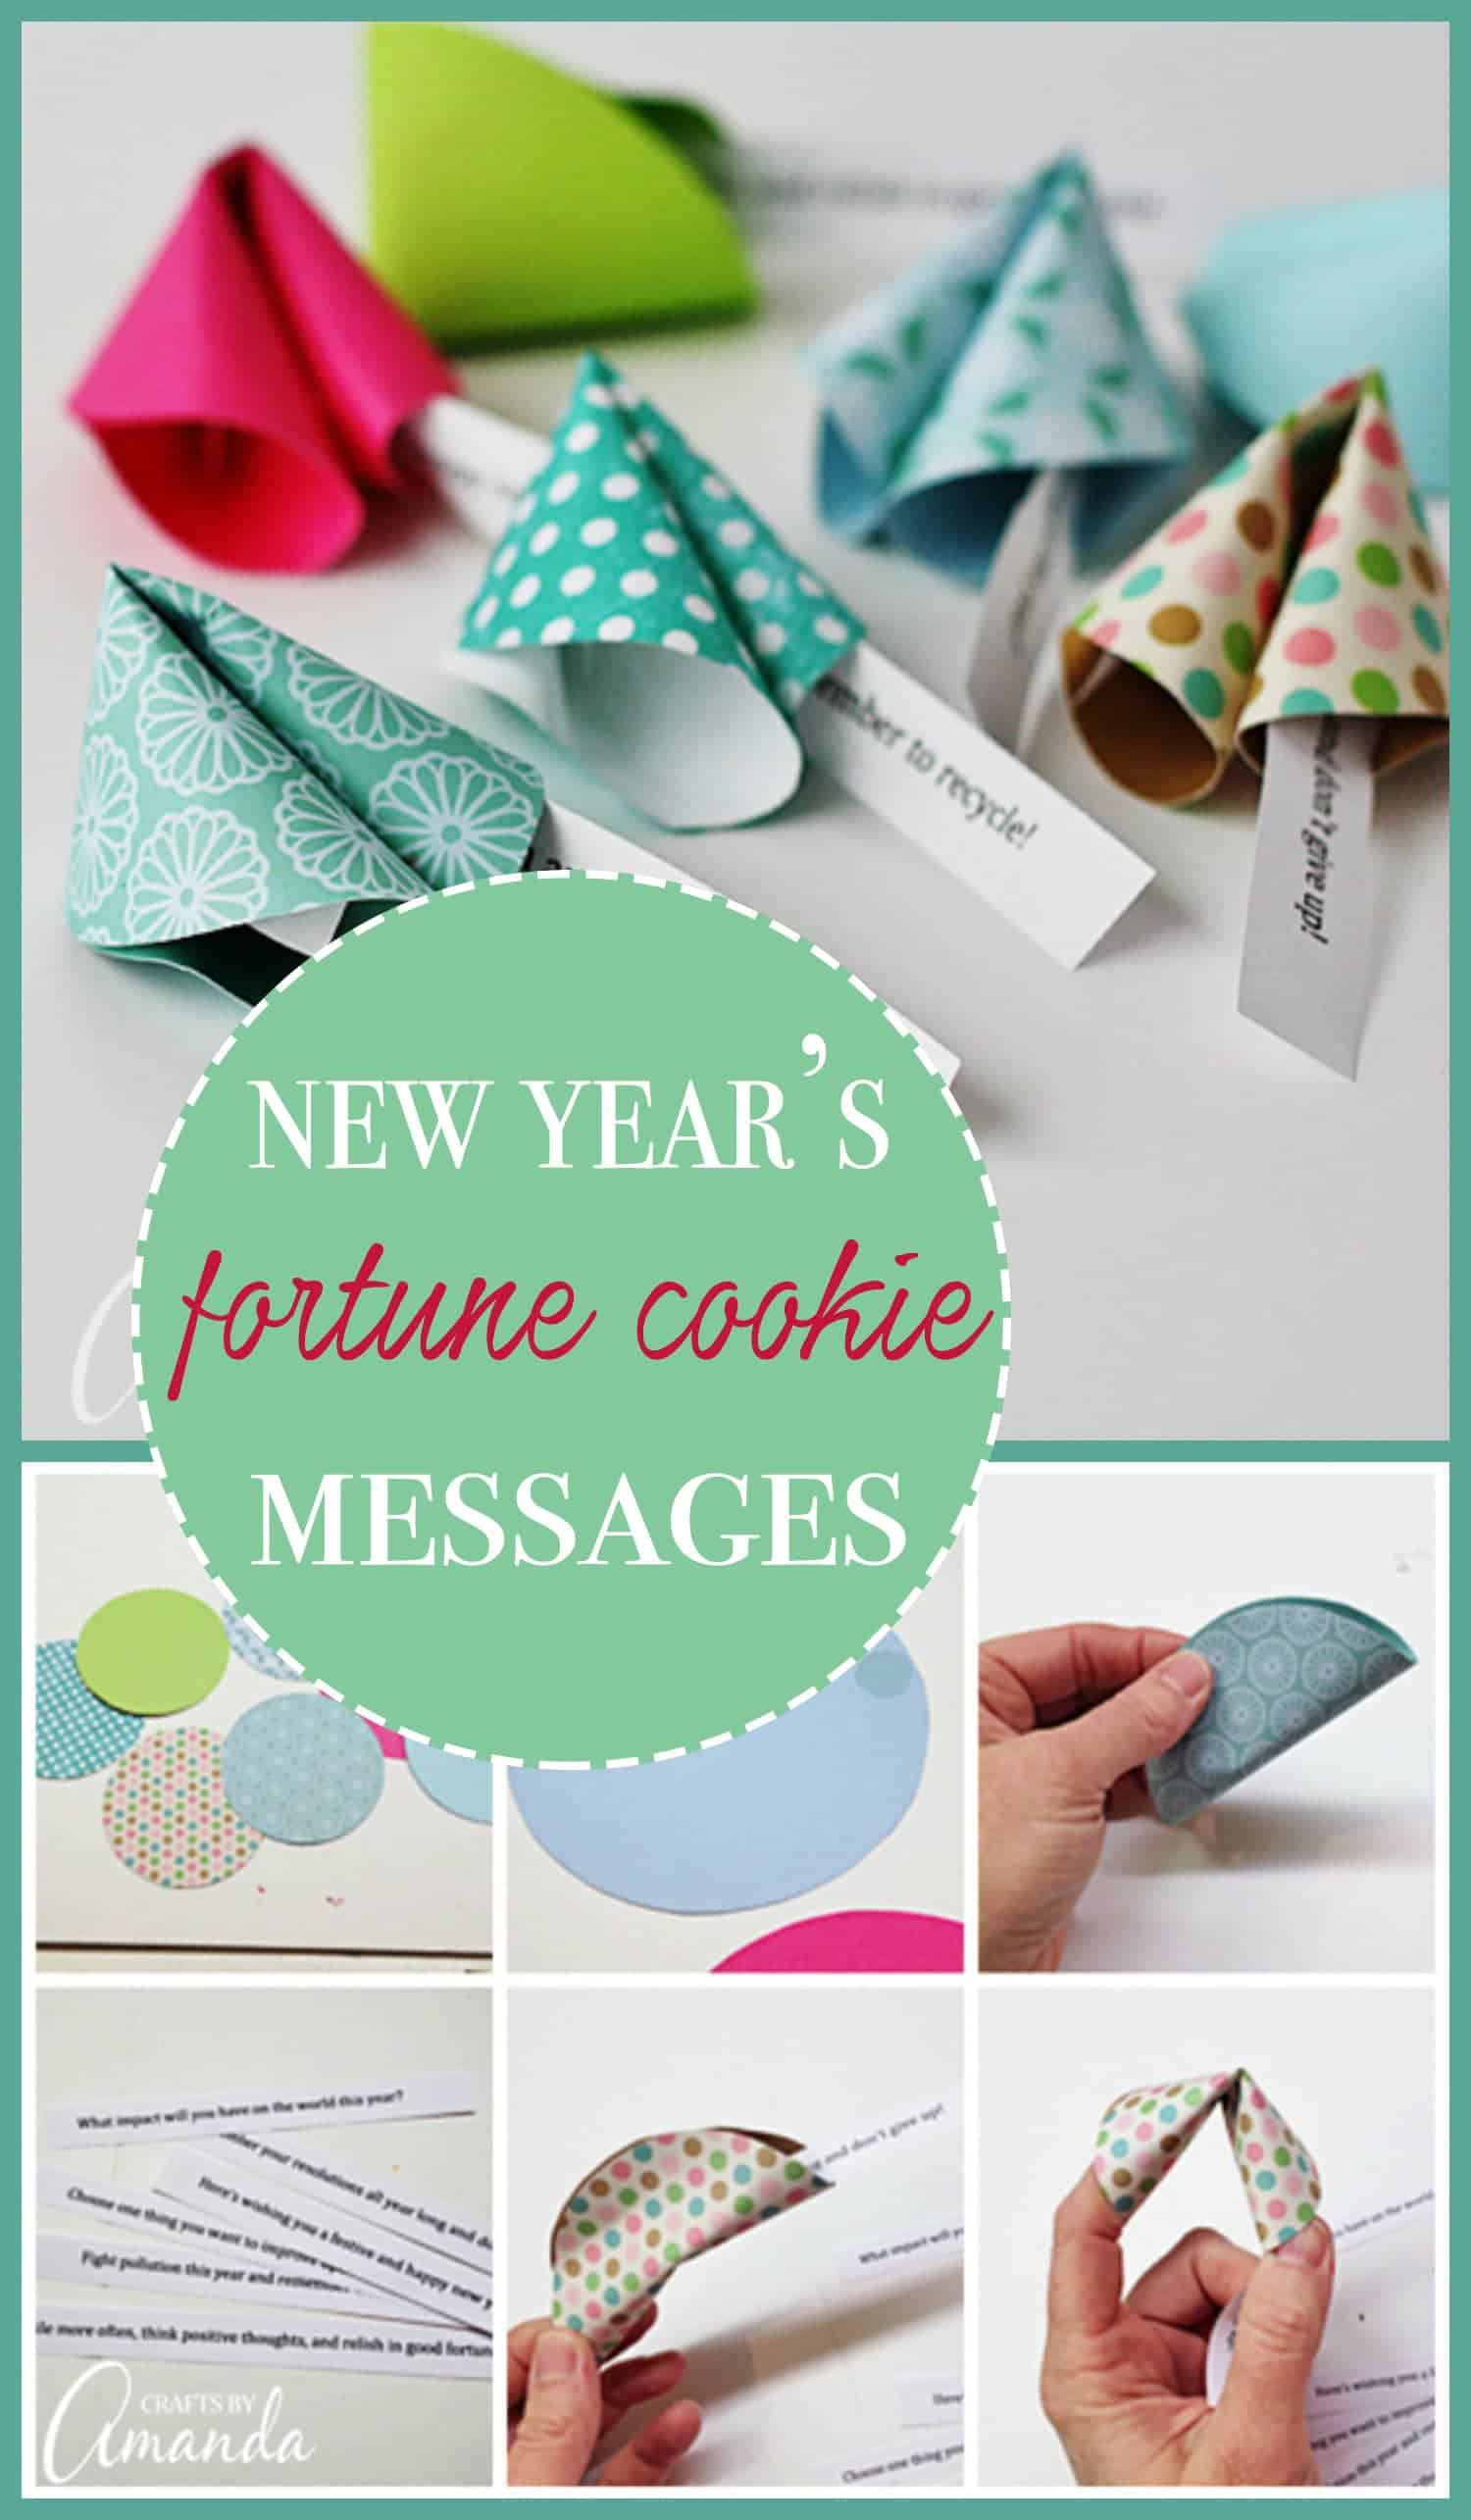 Paper fortune cookie messages are perfect for New Year's, birthday parties, Valentine's Day & other holidays. Paper fortune cookie messages are fun to make!